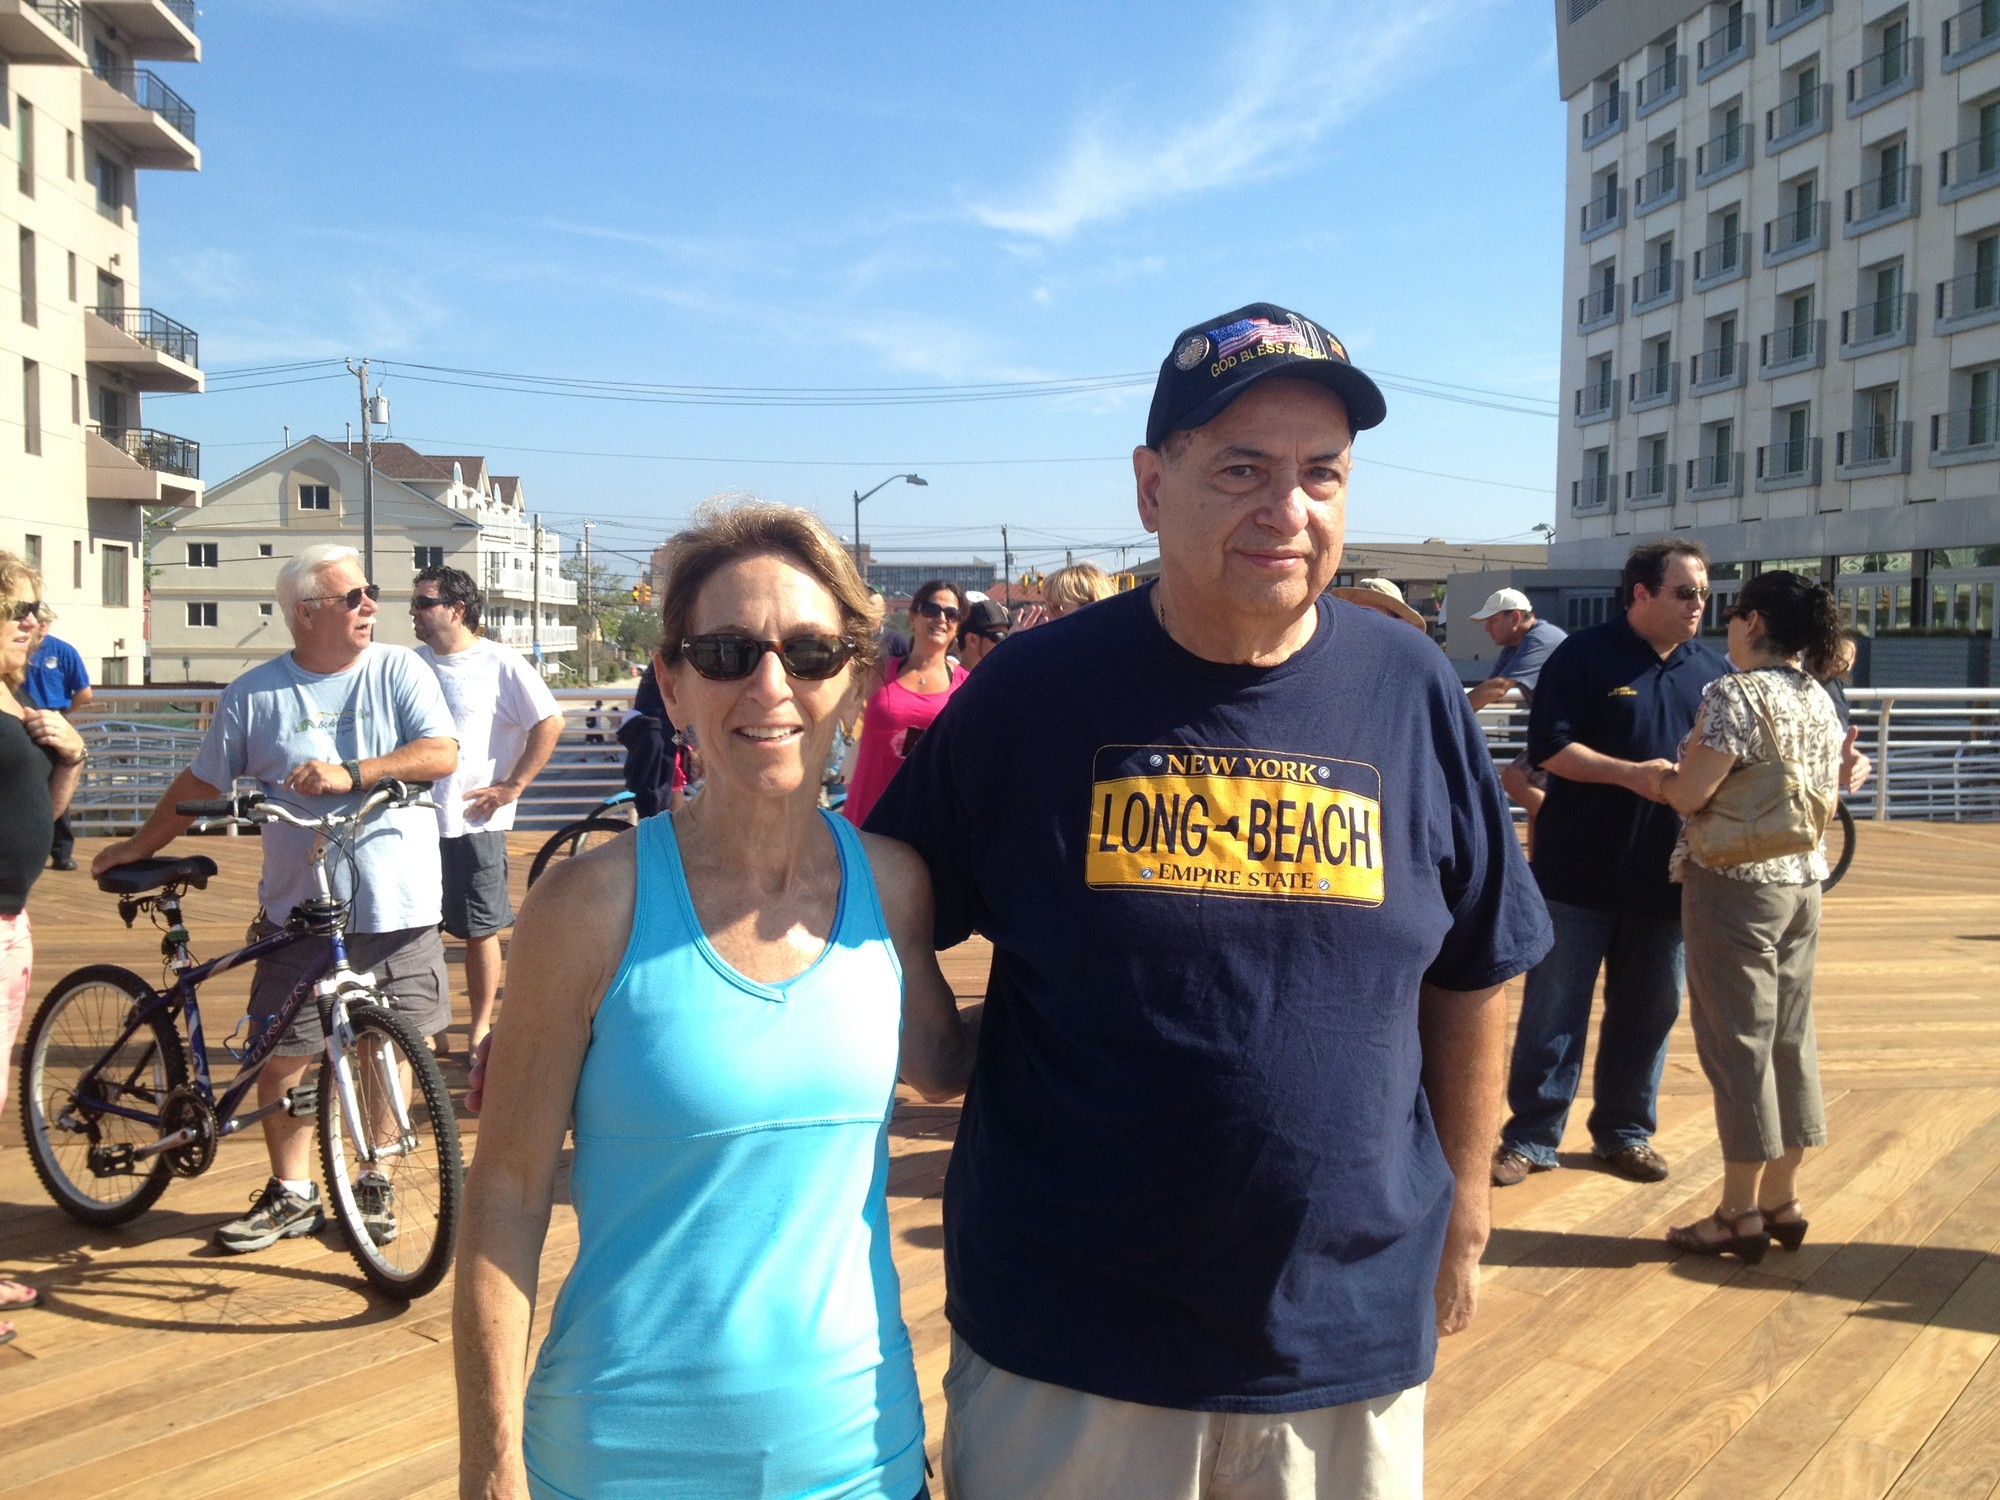 Council Vice President Fran Adelson took a break from her run on the boardwalk to chat with resident Joe Ponte.